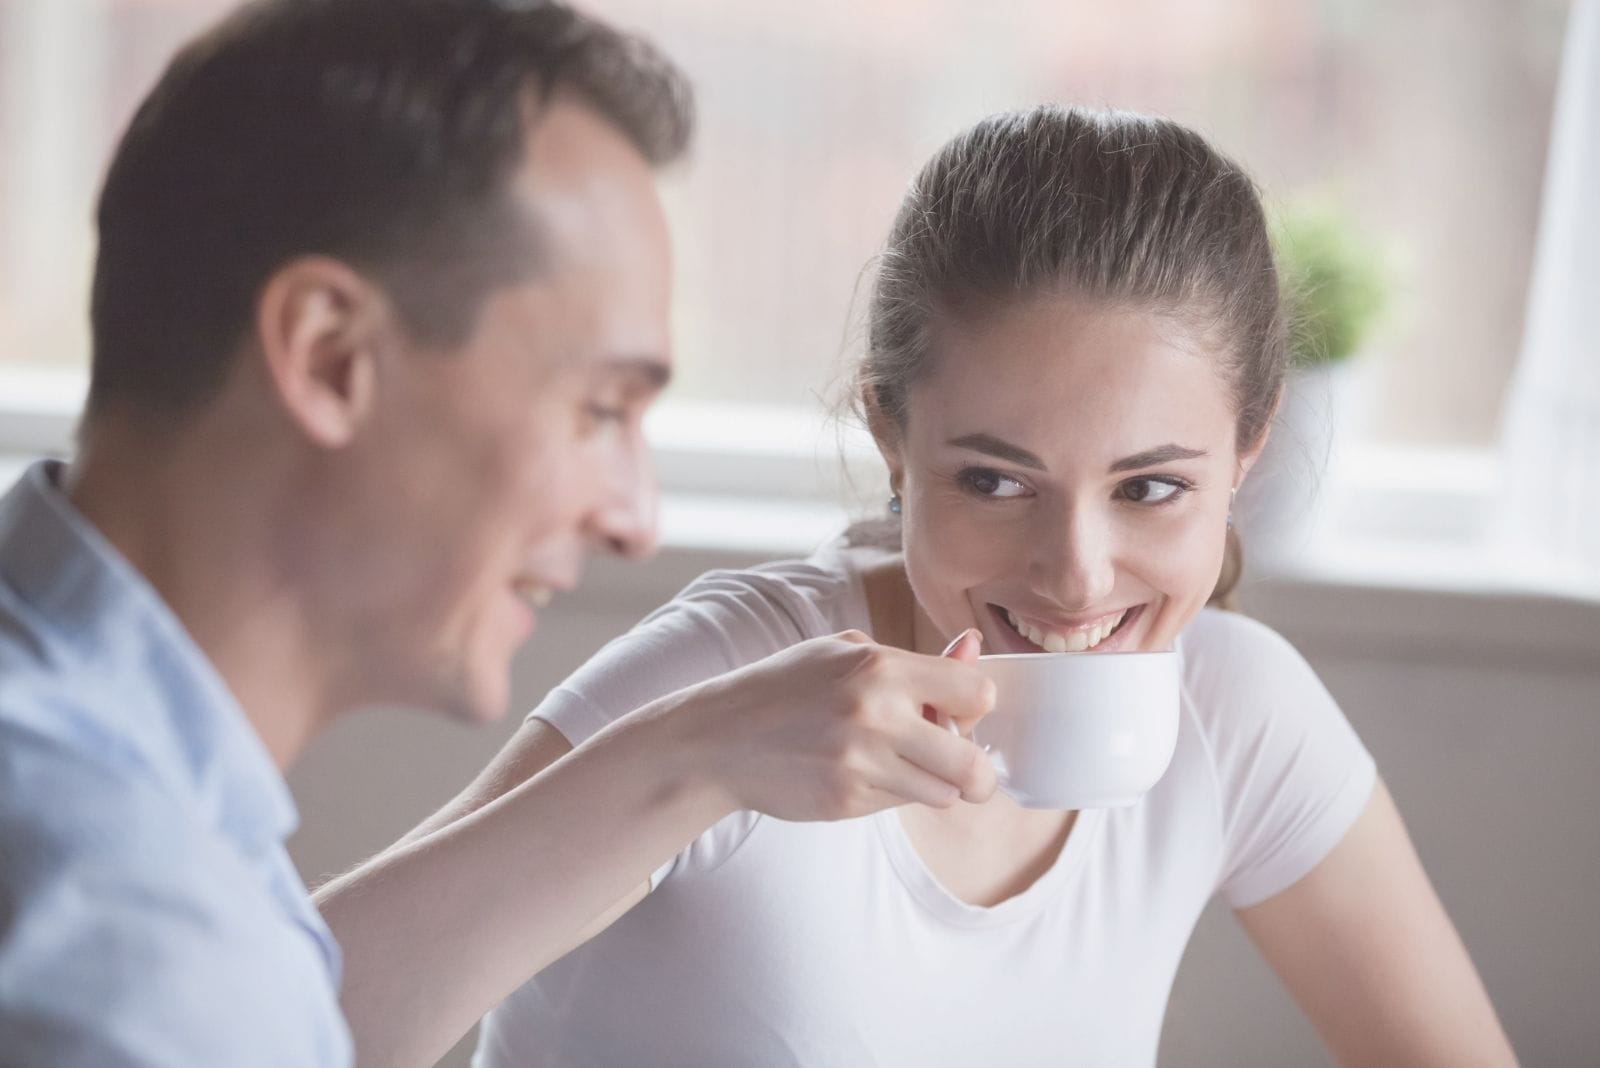 smiling woman drinking coffee with a handsome man indoors